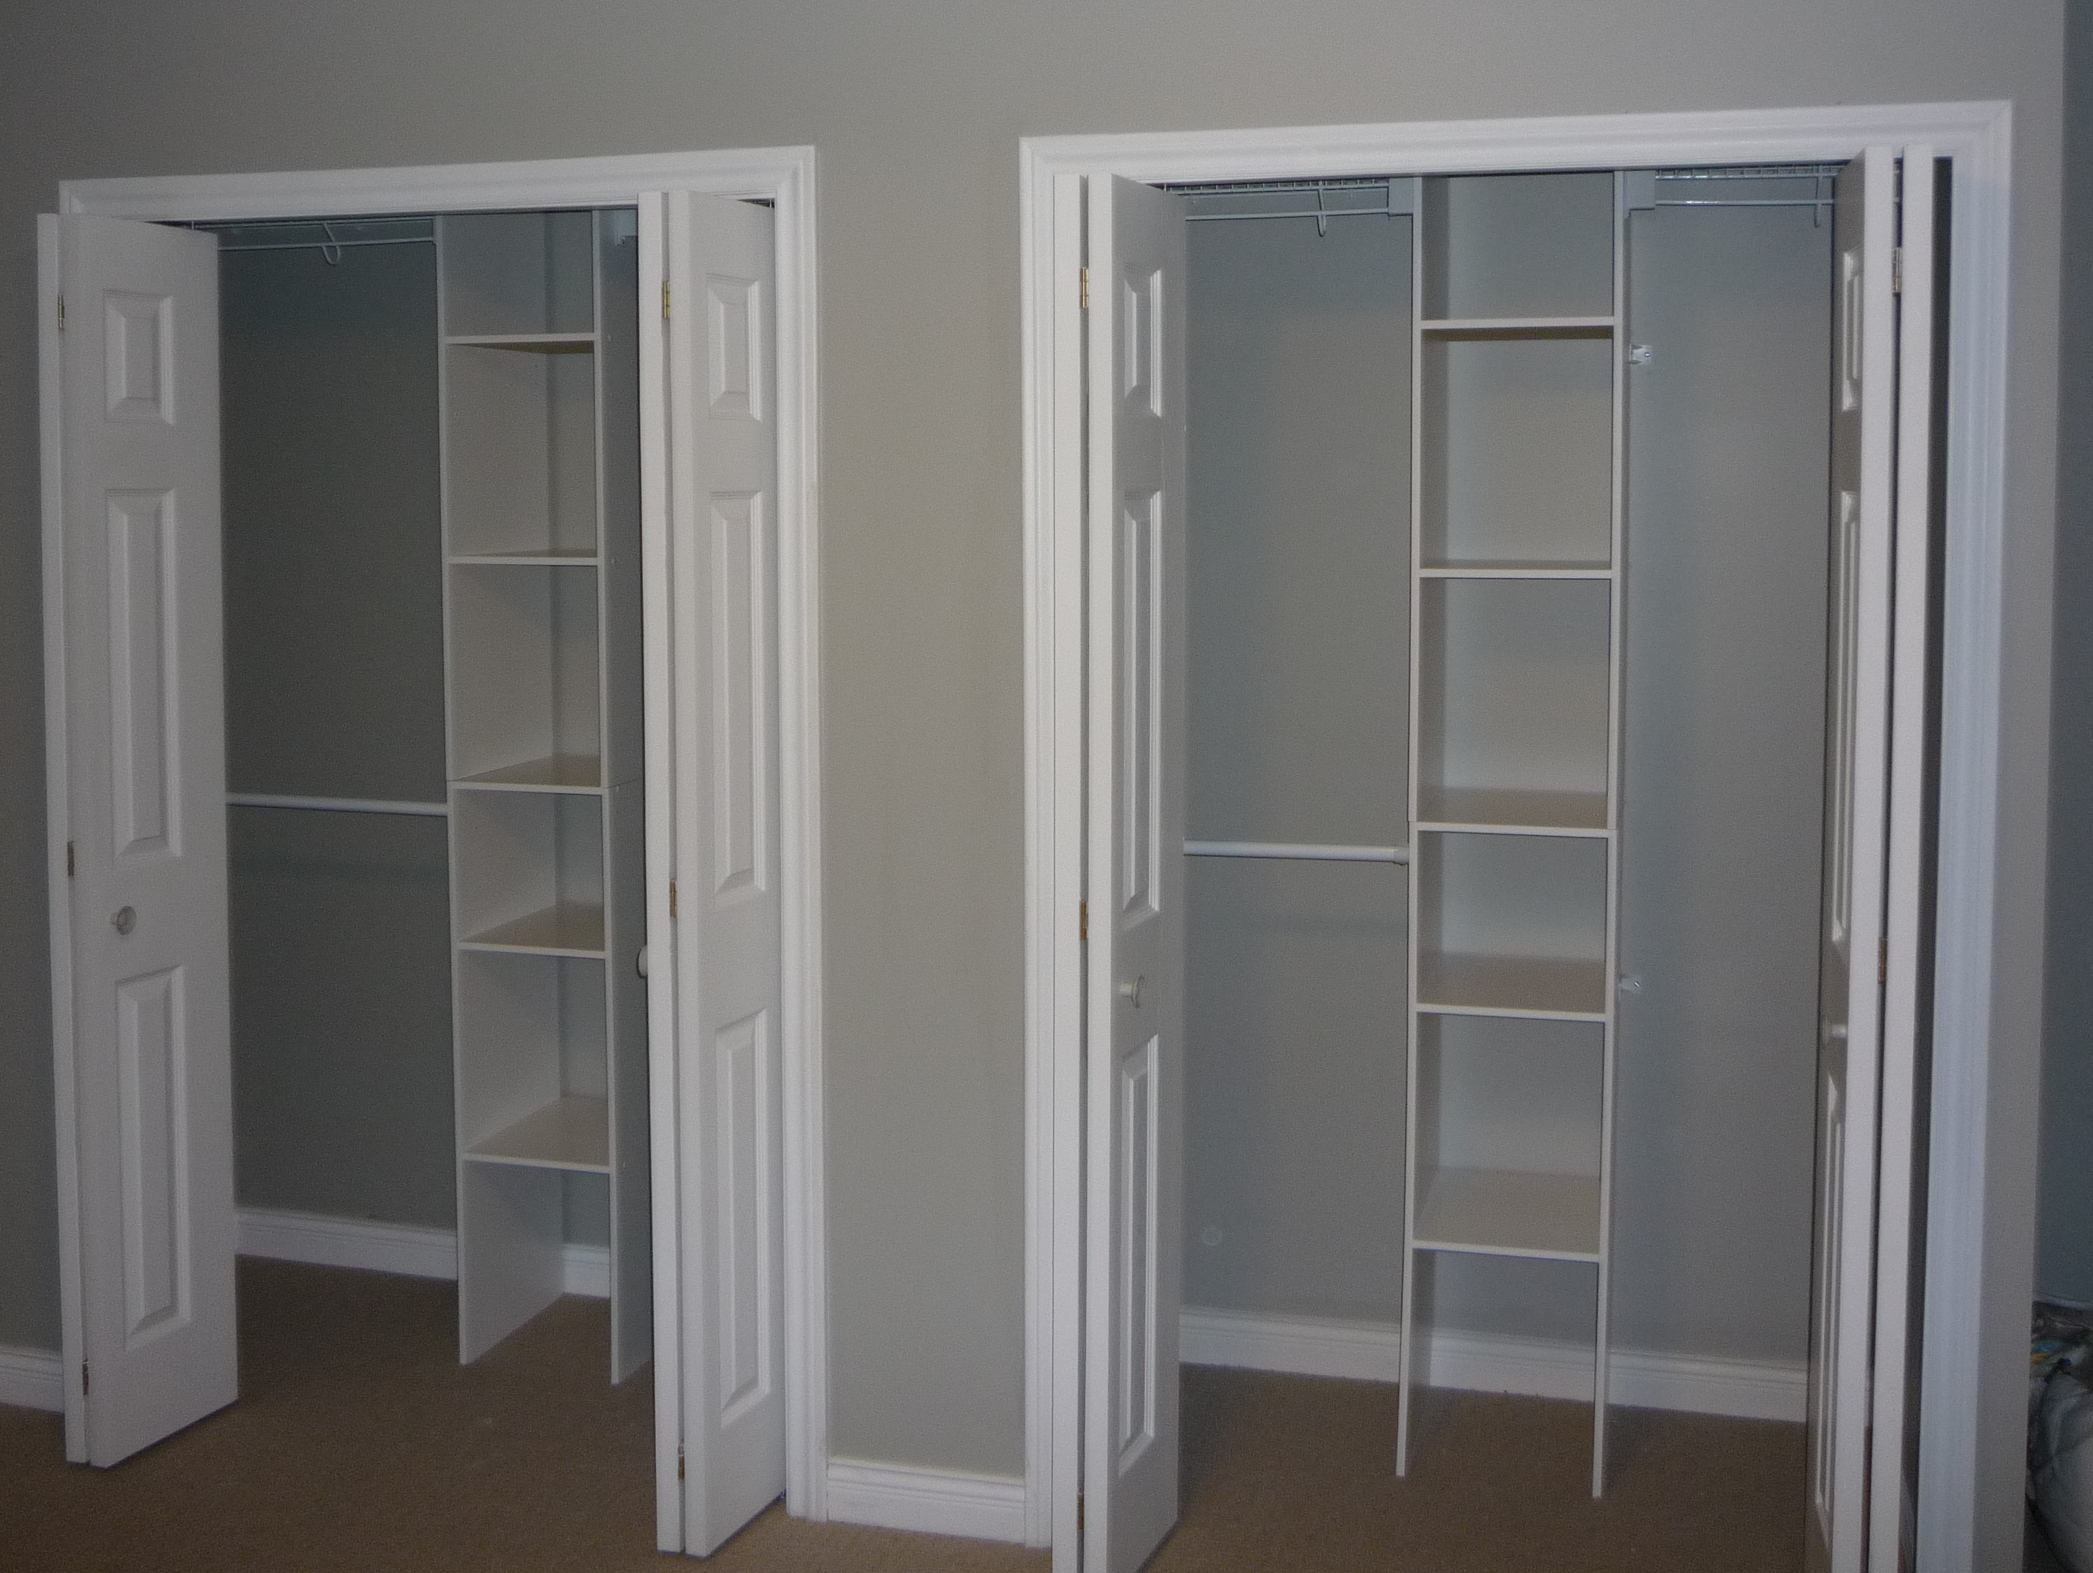 Reach-In Closets with Interior Organizers in Master Bedroom